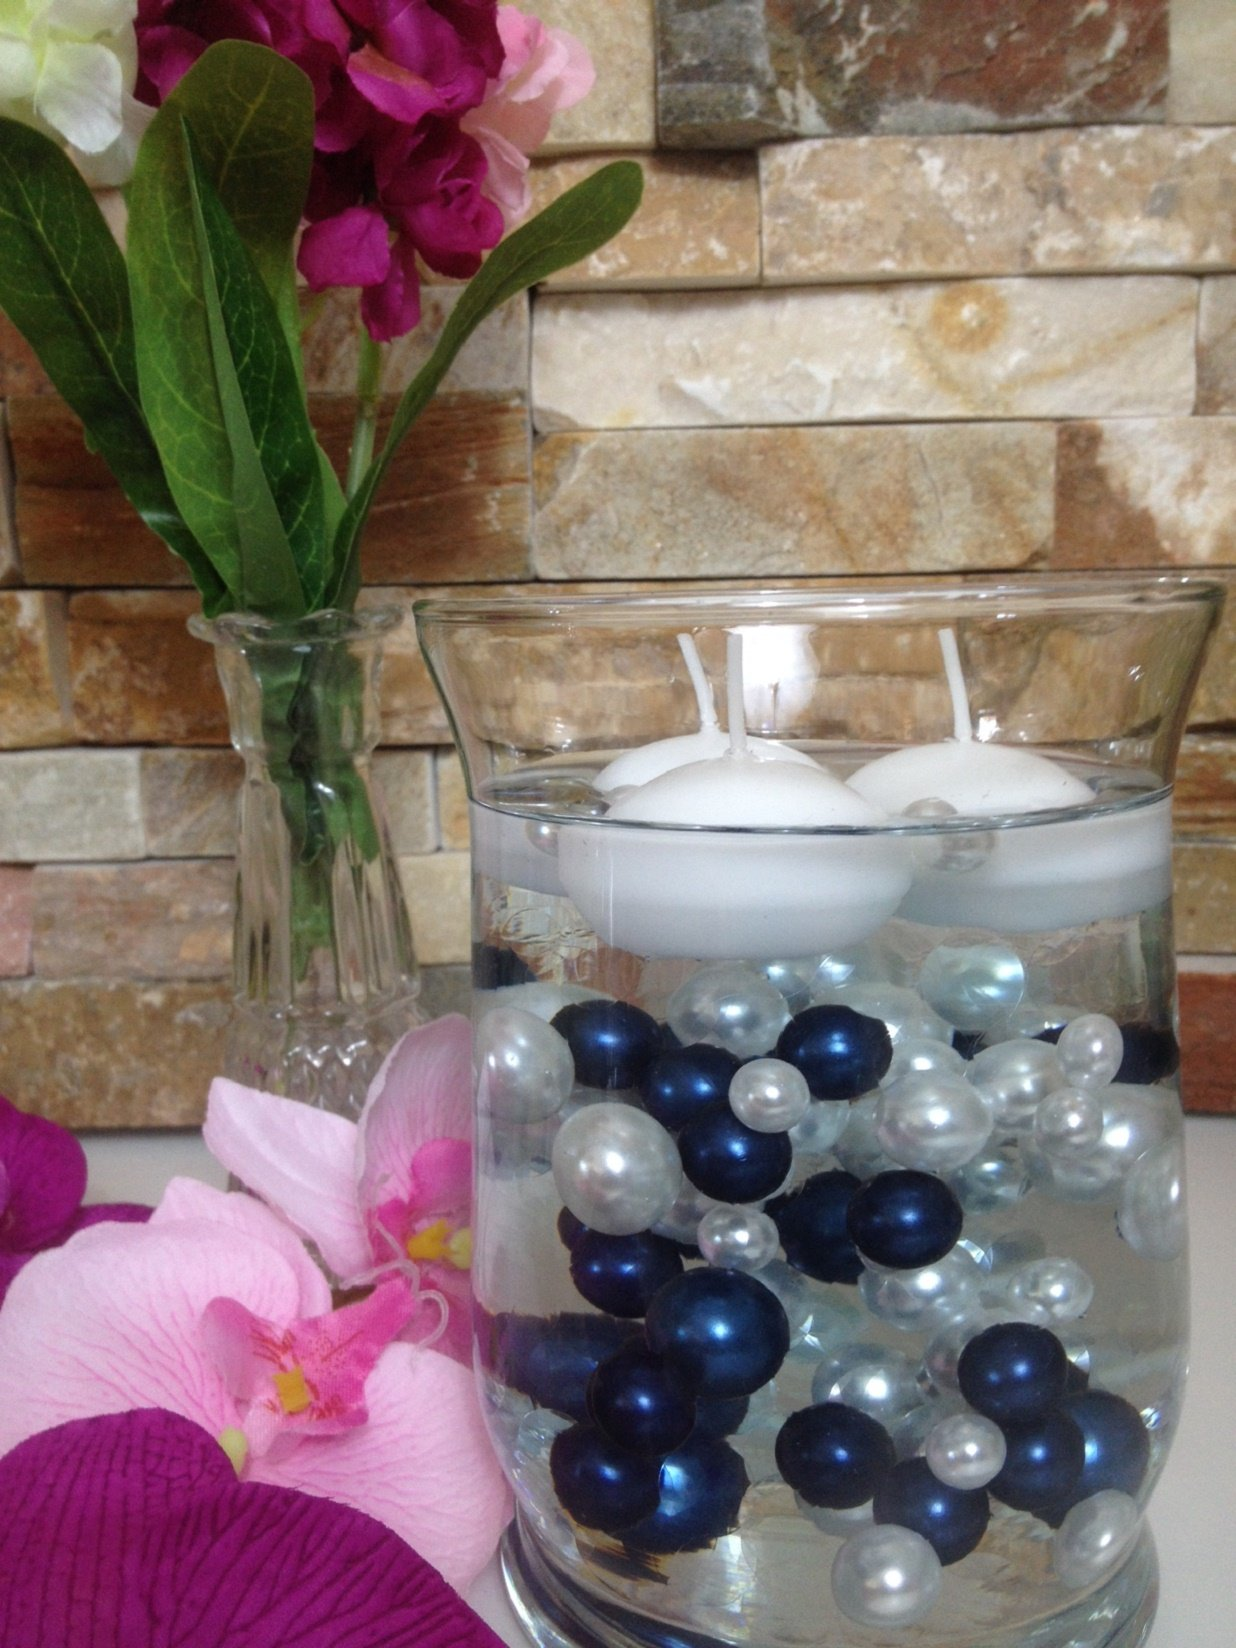 Vase Filler Pearls For Floating Pearl Centerpieces, 90 Navy Blue & White Pearls Mix Size No Hole Pearls, (Transparent Gel Beads Required To Create Floating Pearls Sold separately)